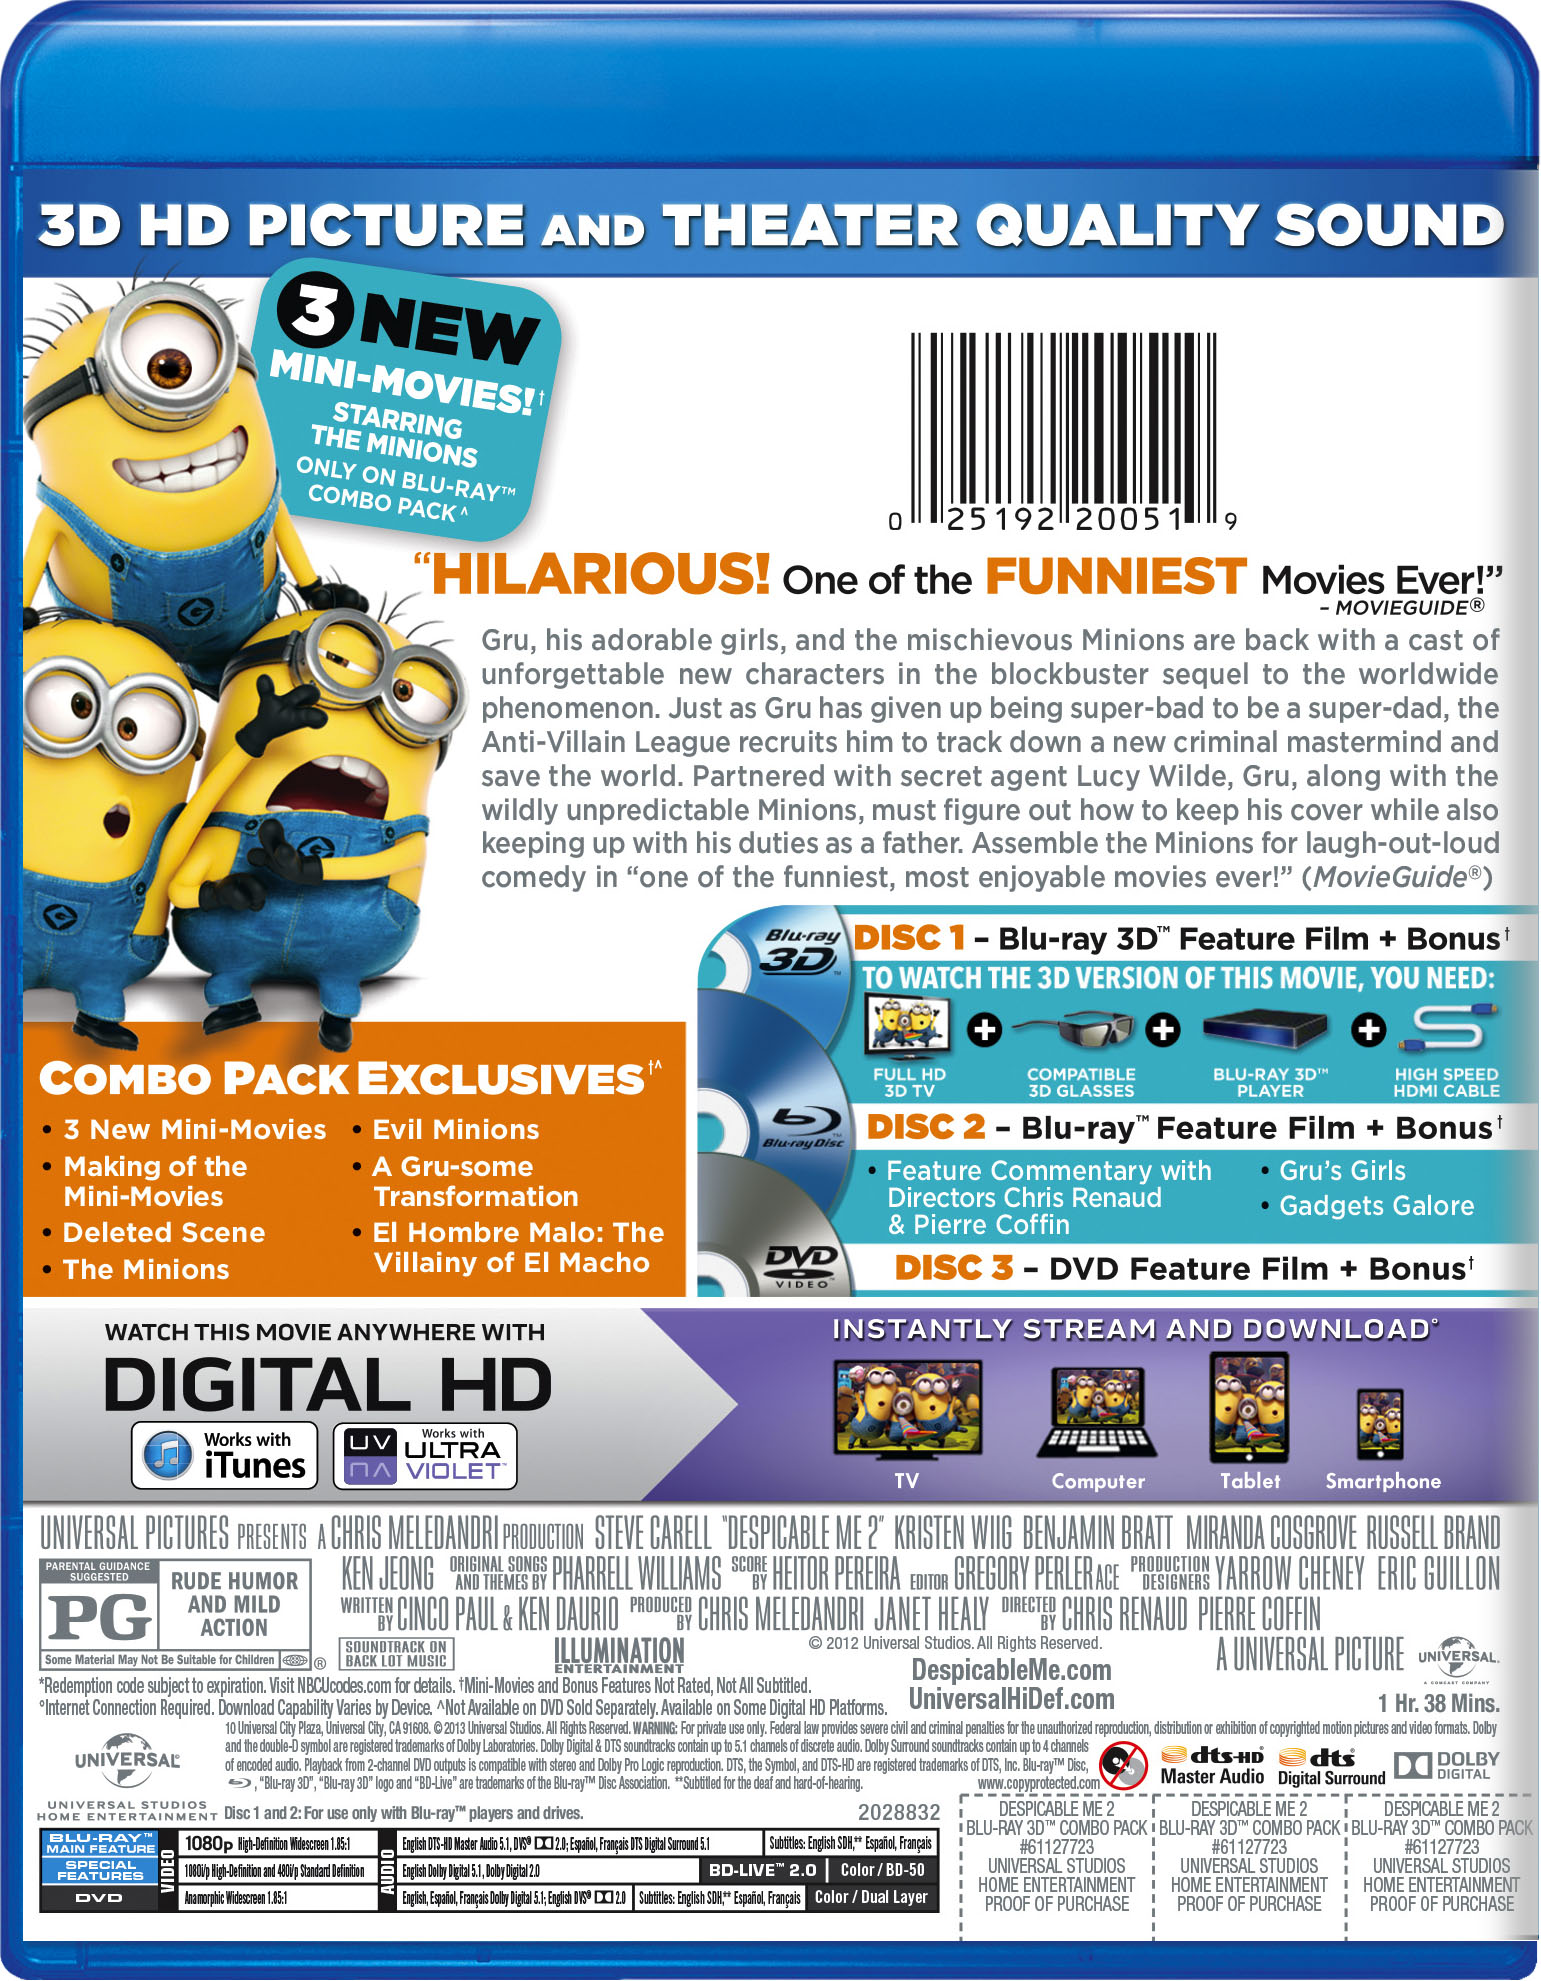 Despicable Me 2 | Movie Page | DVD, Blu-ray, Digital HD, On Demand